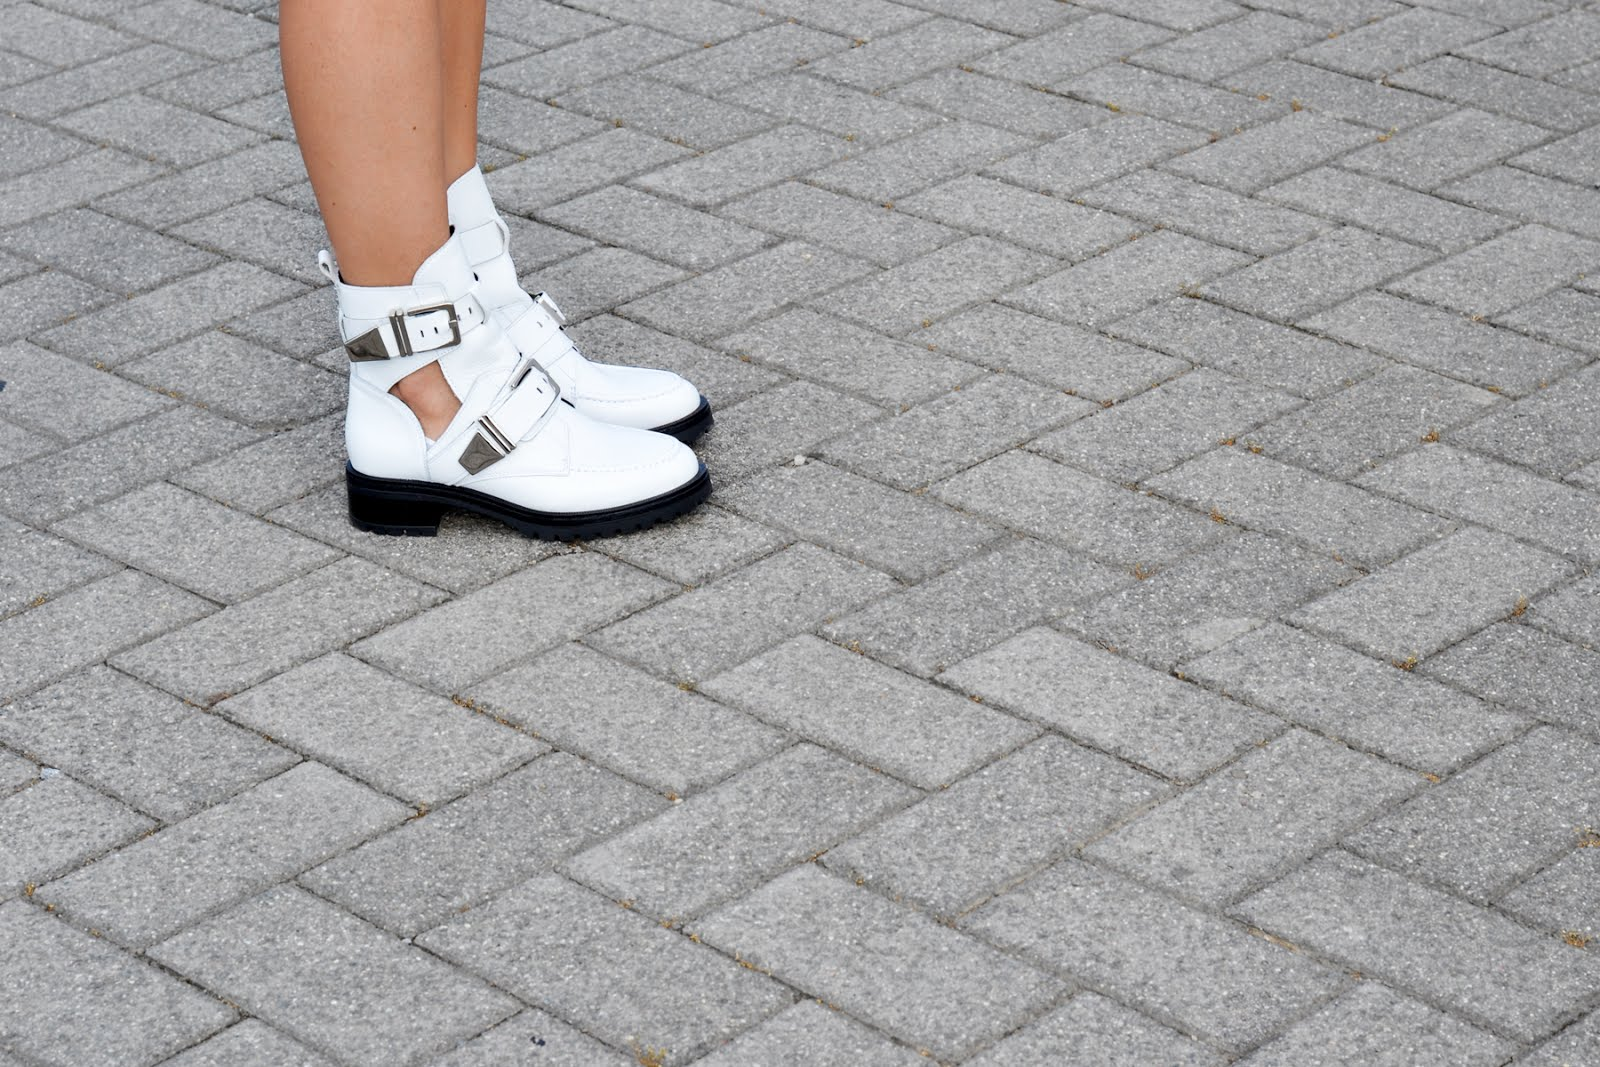 Festival look by Sacha shoes,  white buckle boots, Balenciaga inspired